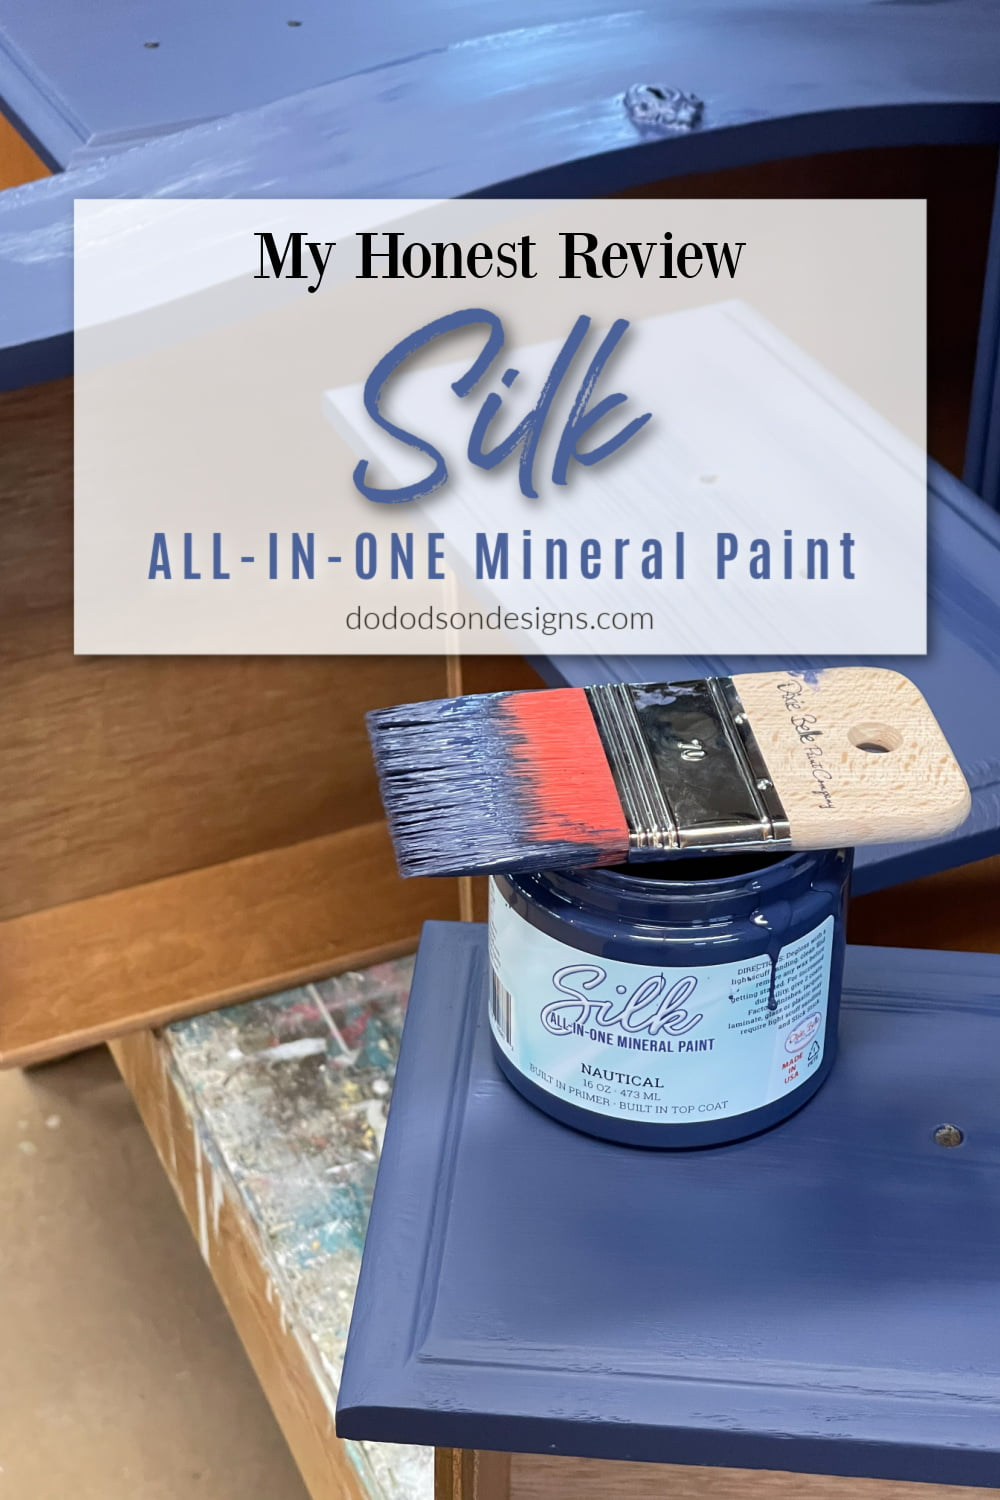 Silk All-In-One Mineral Paint... My Honest Review